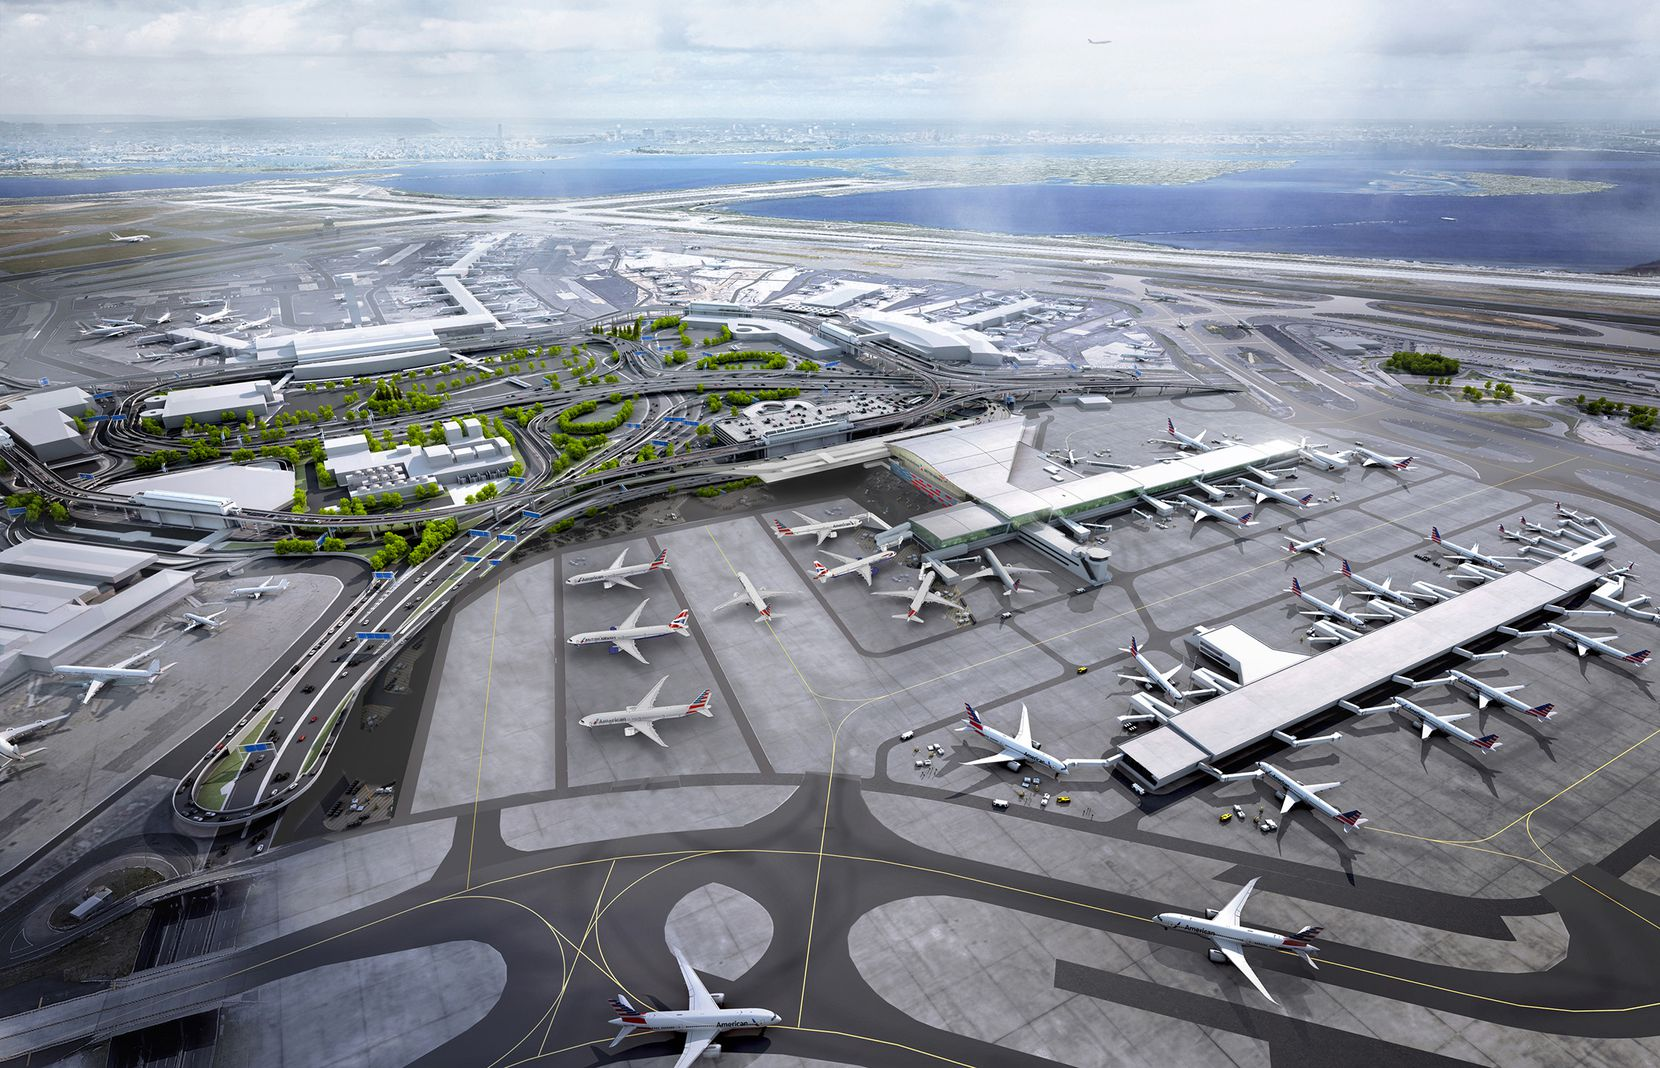 This rendering shows Terminal 8 at New York's John F. Kennedy International Airport, which will be shared by American Airlines and British Airways